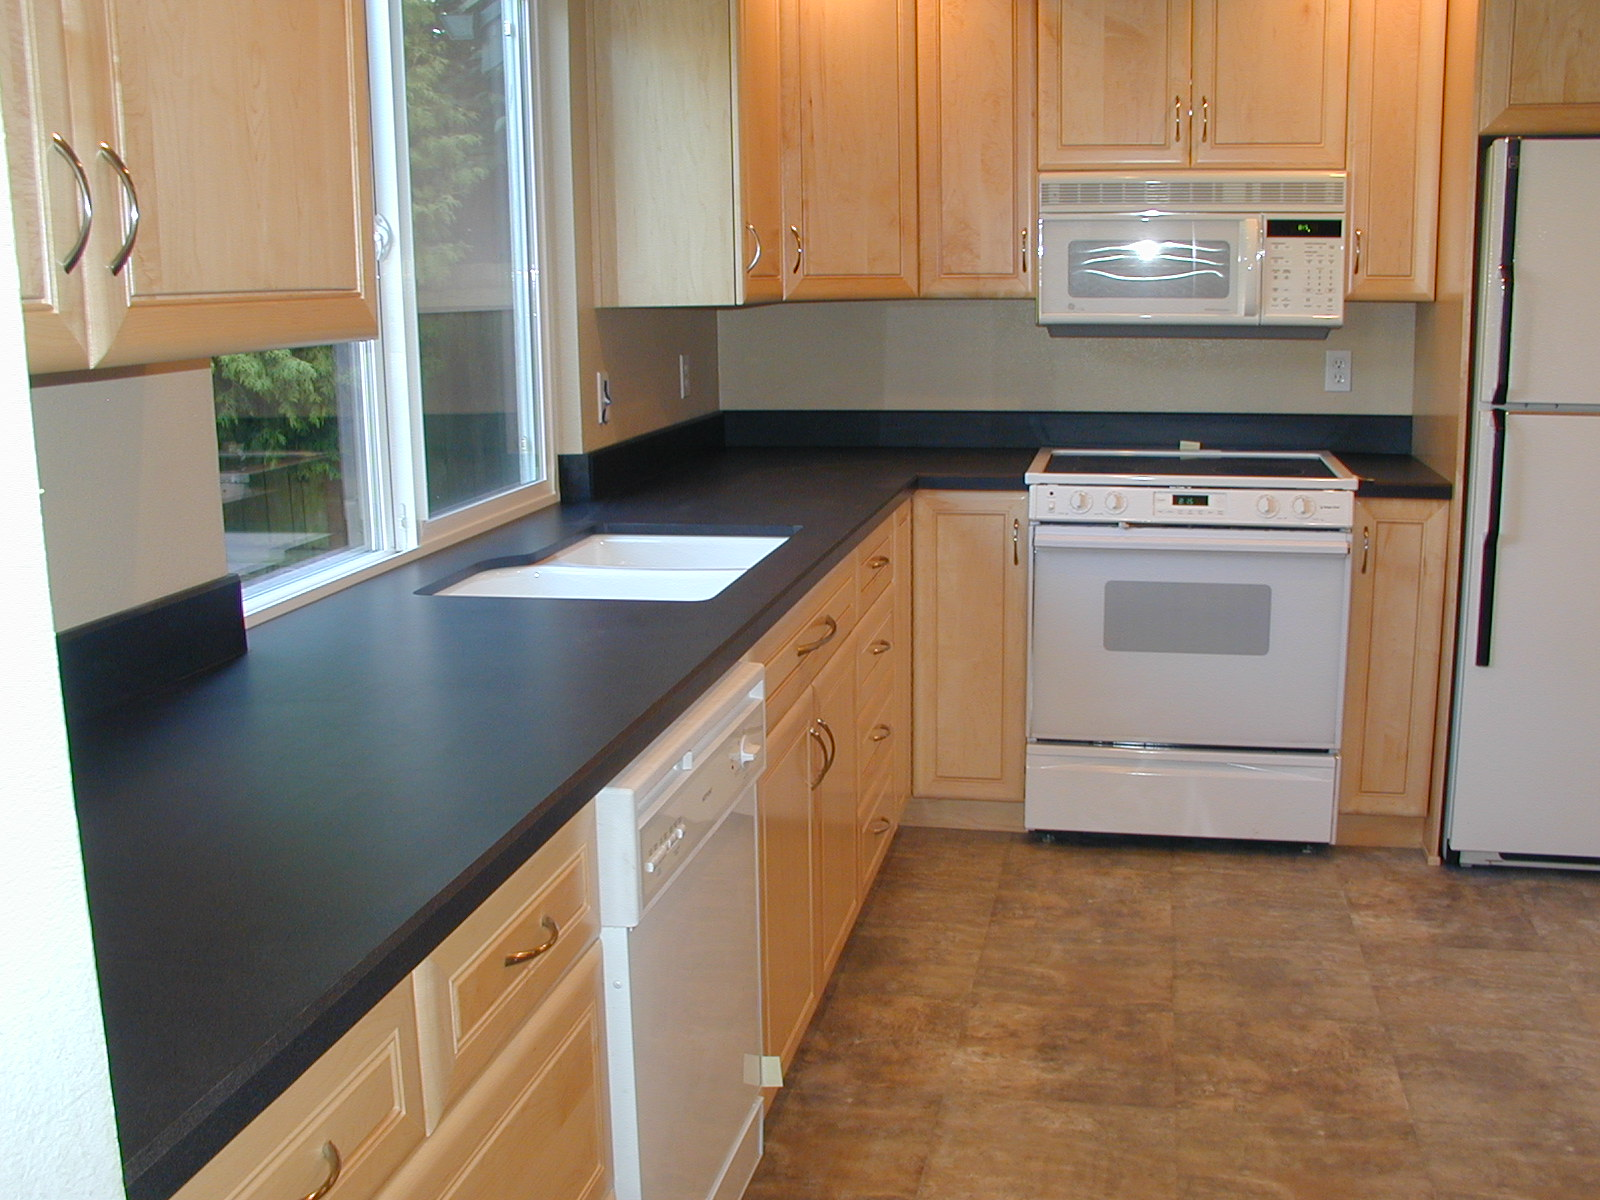 Laminate Countertop : Beveled_laminate_countertop_and_splash_and_undermount_sink.jpg